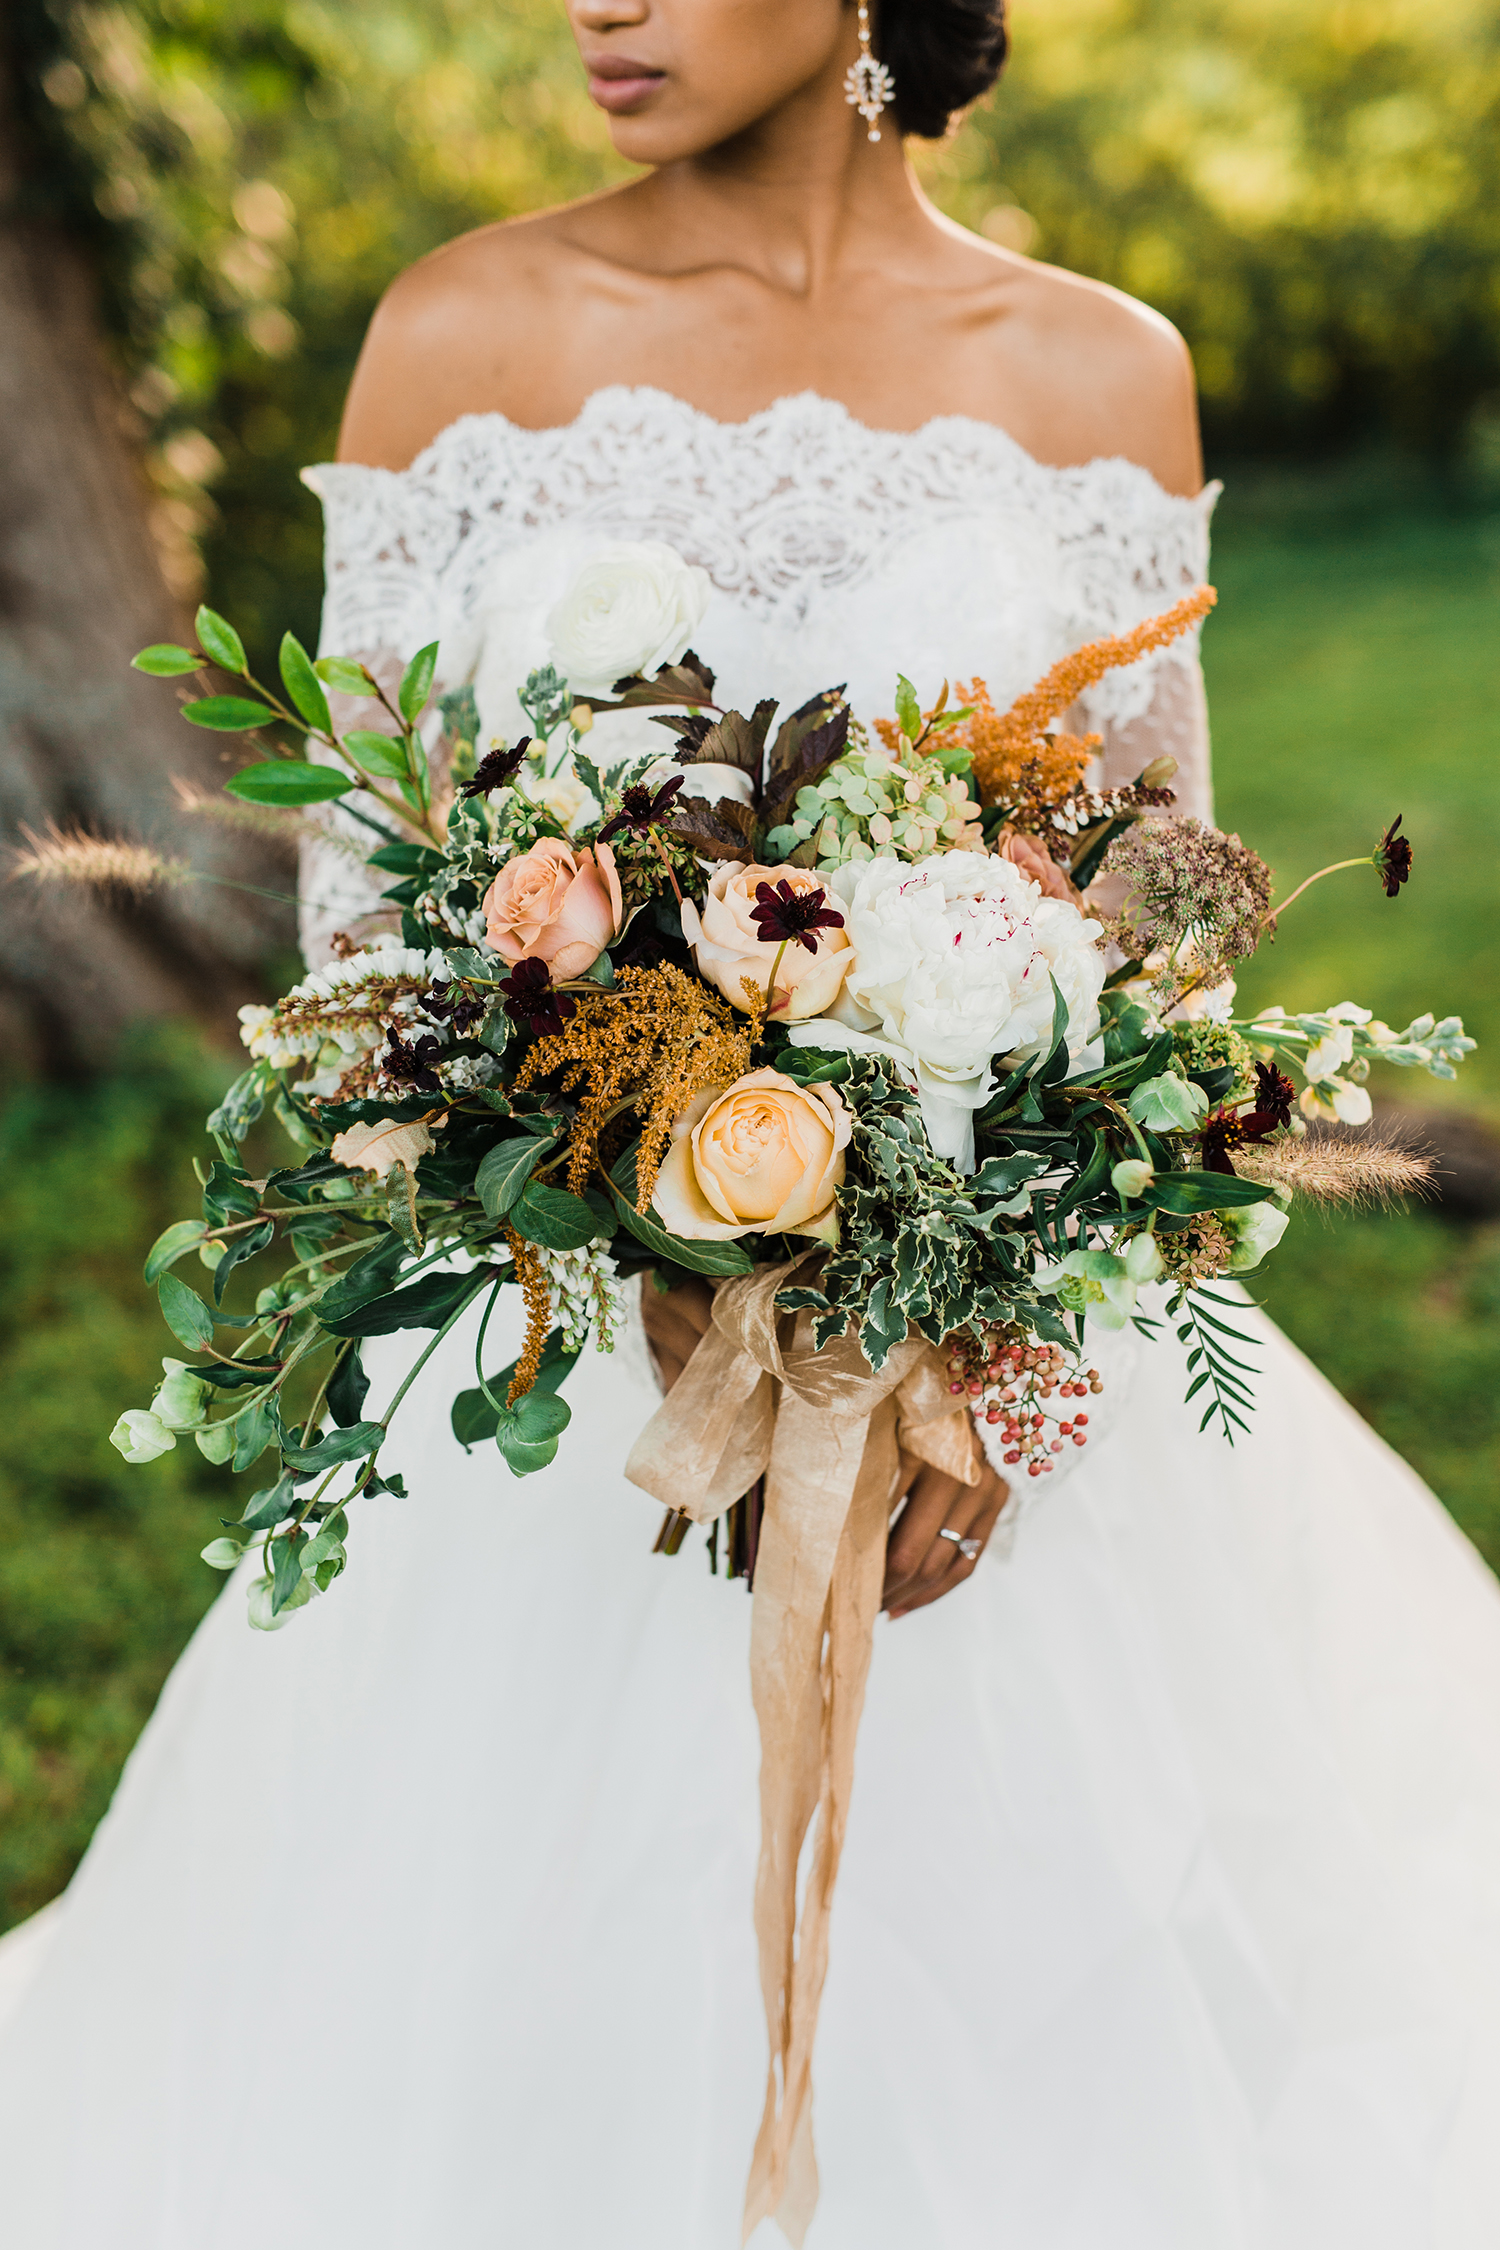 autumnal white, orange, and green bouquet